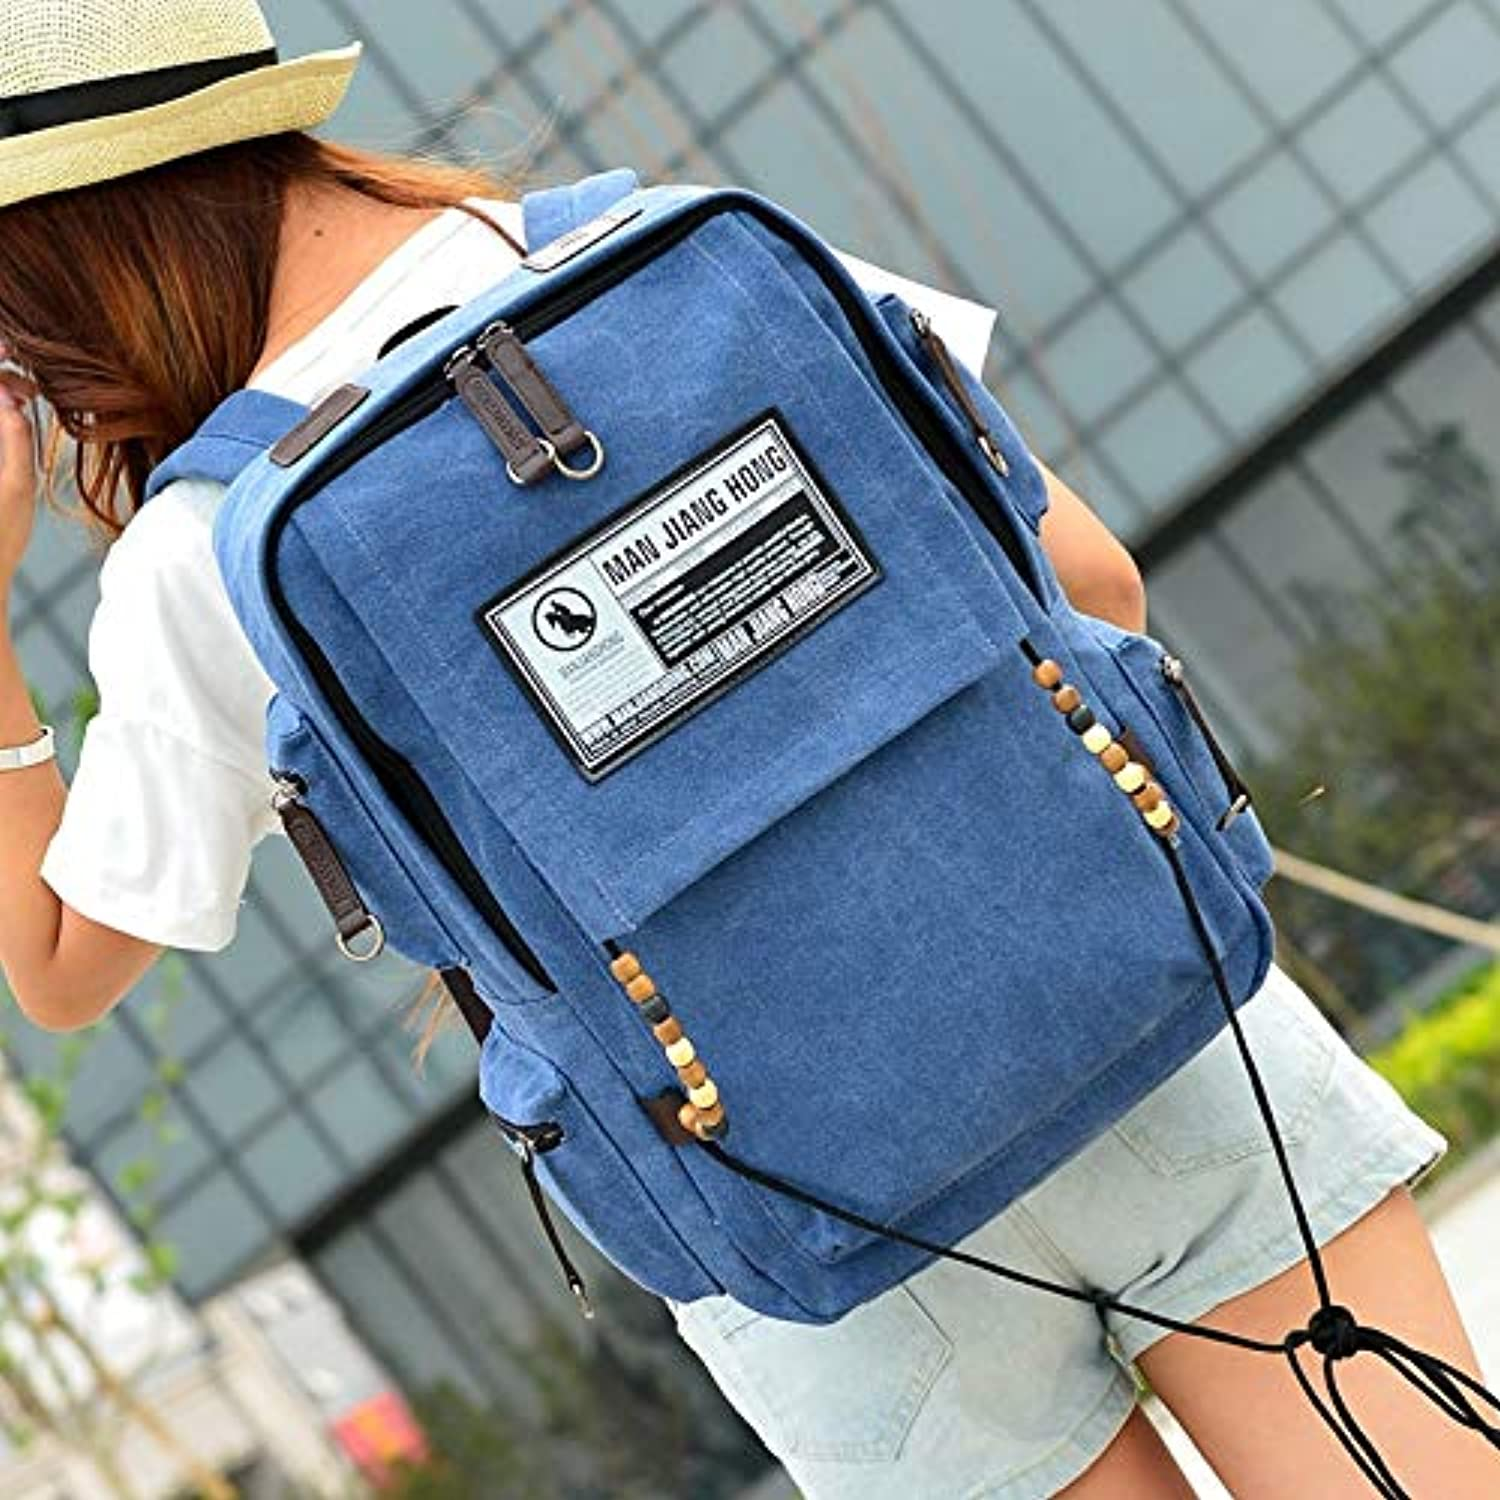 QingToo Casual backpack canvas bag male computer bag travel outdoor leisure bag, bluee